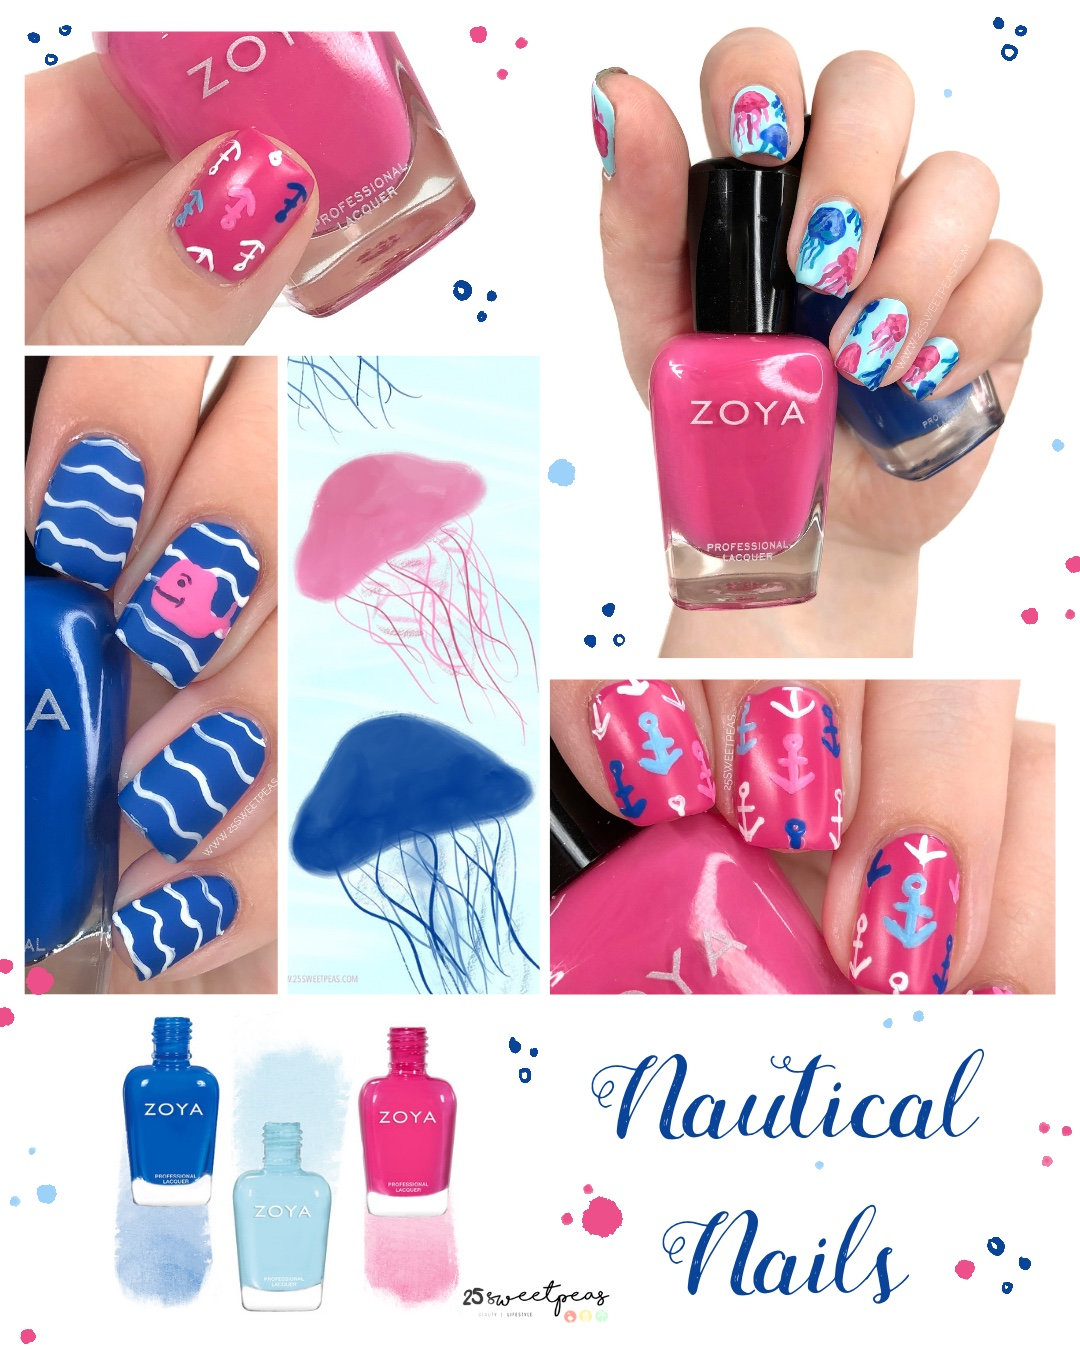 3 Nautical Nail Art Looks for Summer